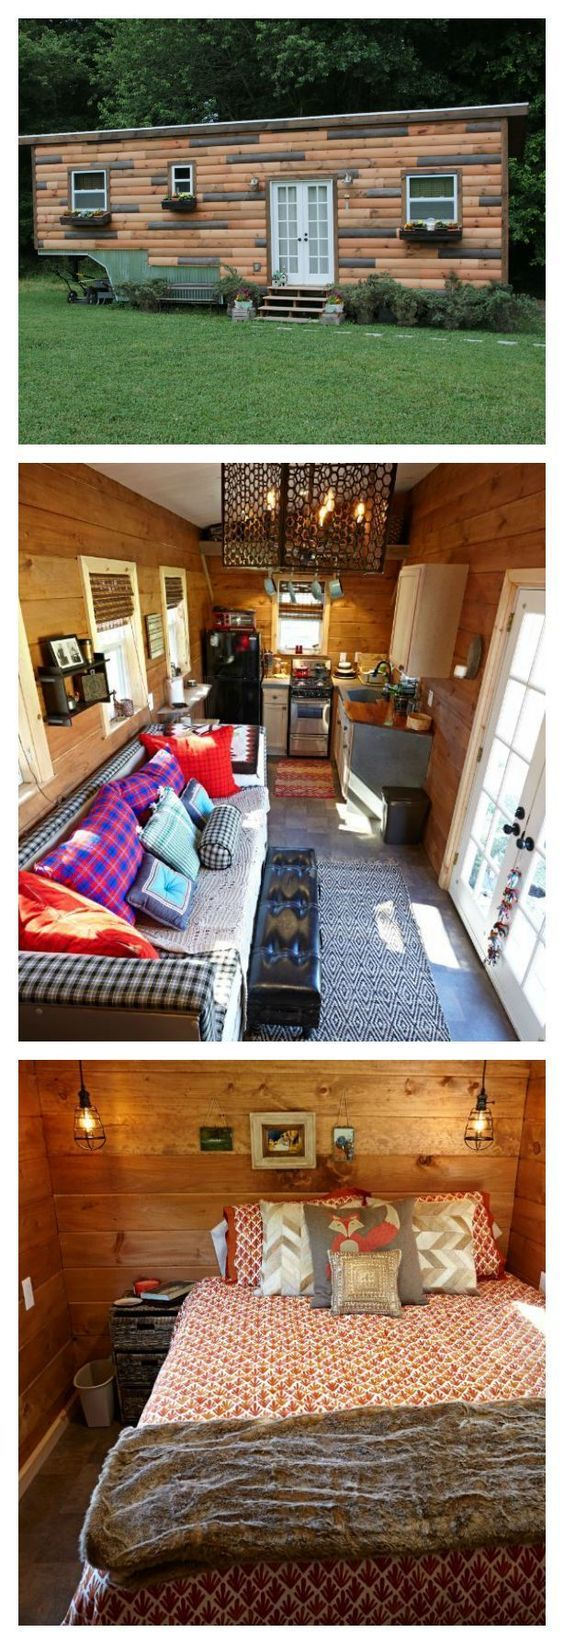 "Every square inch of space is used in this tiny home. And a 6'6"" tall man lives in this tiny trailer! 